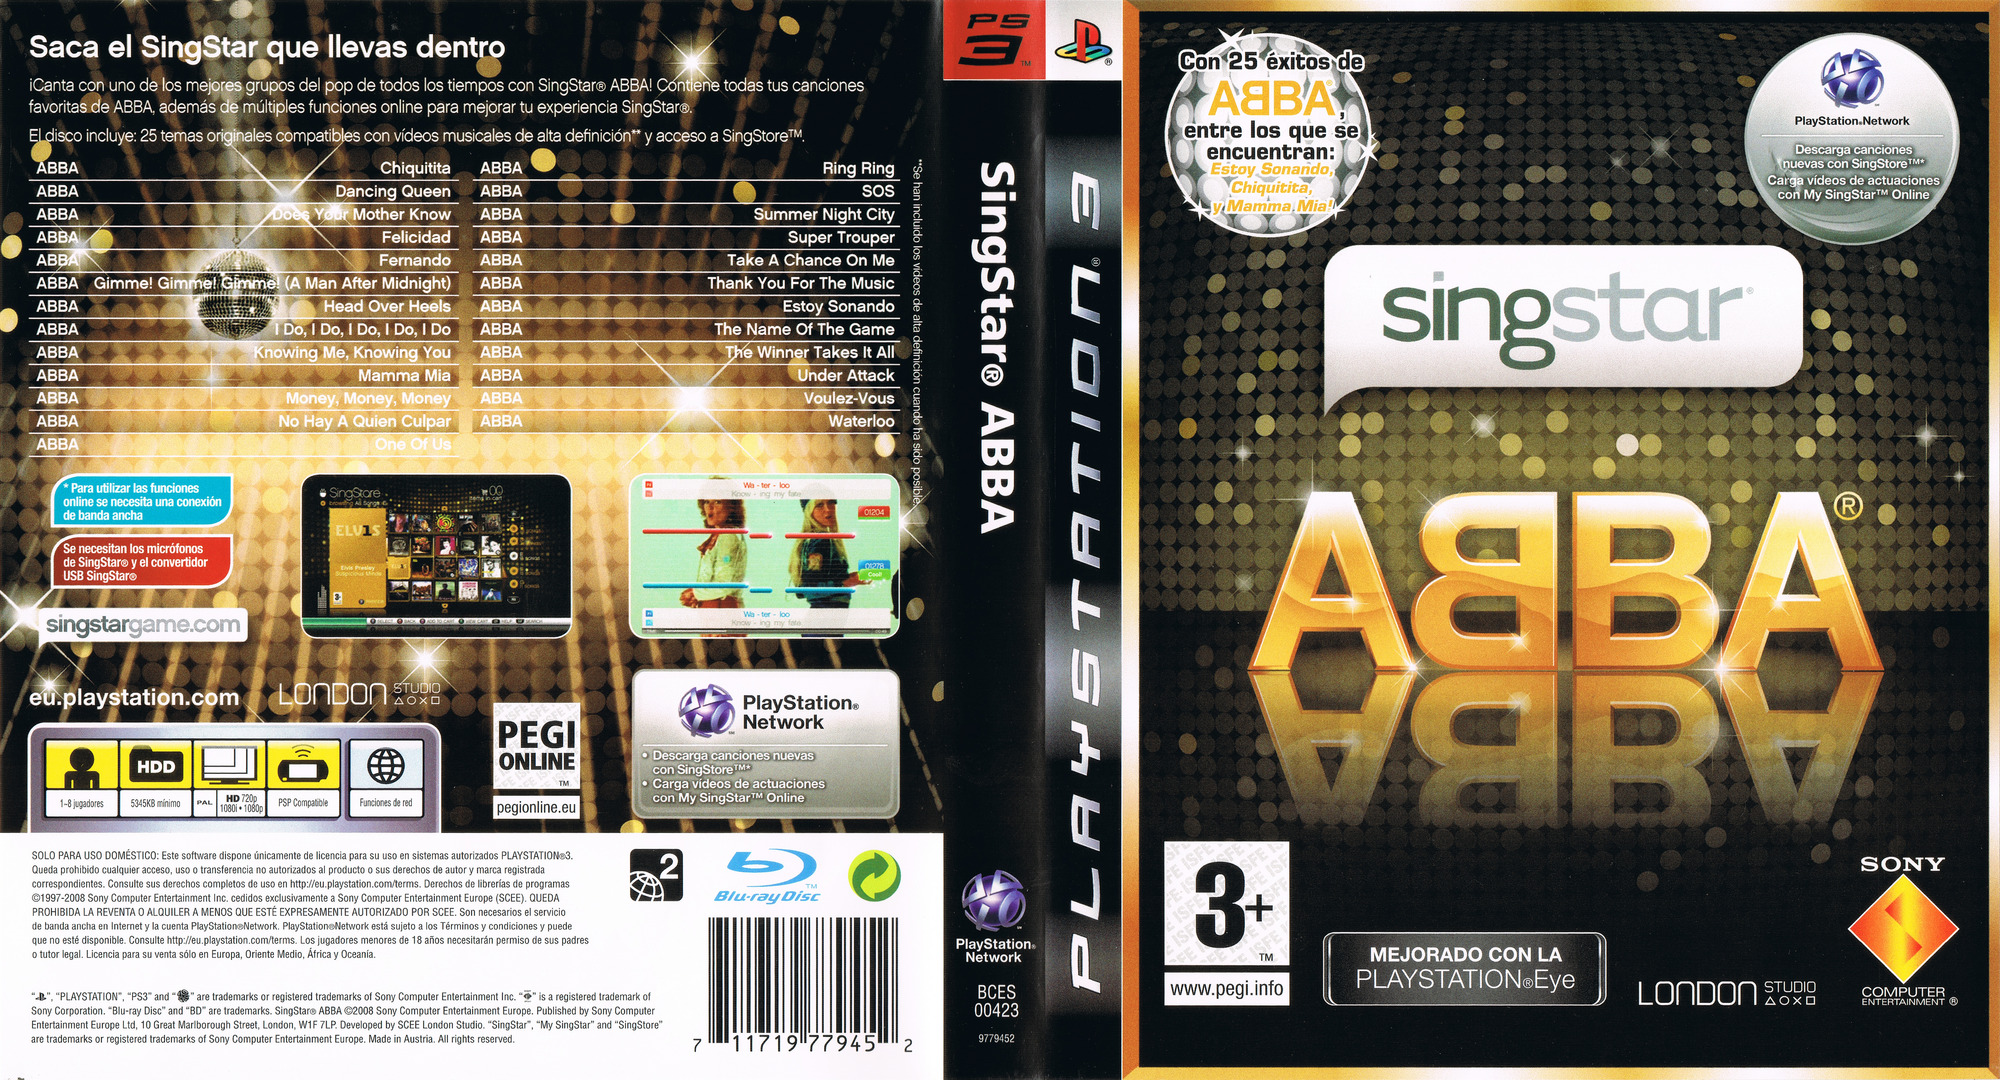 SingStar ABBA PS3 coverfullHQ (BCES00423)